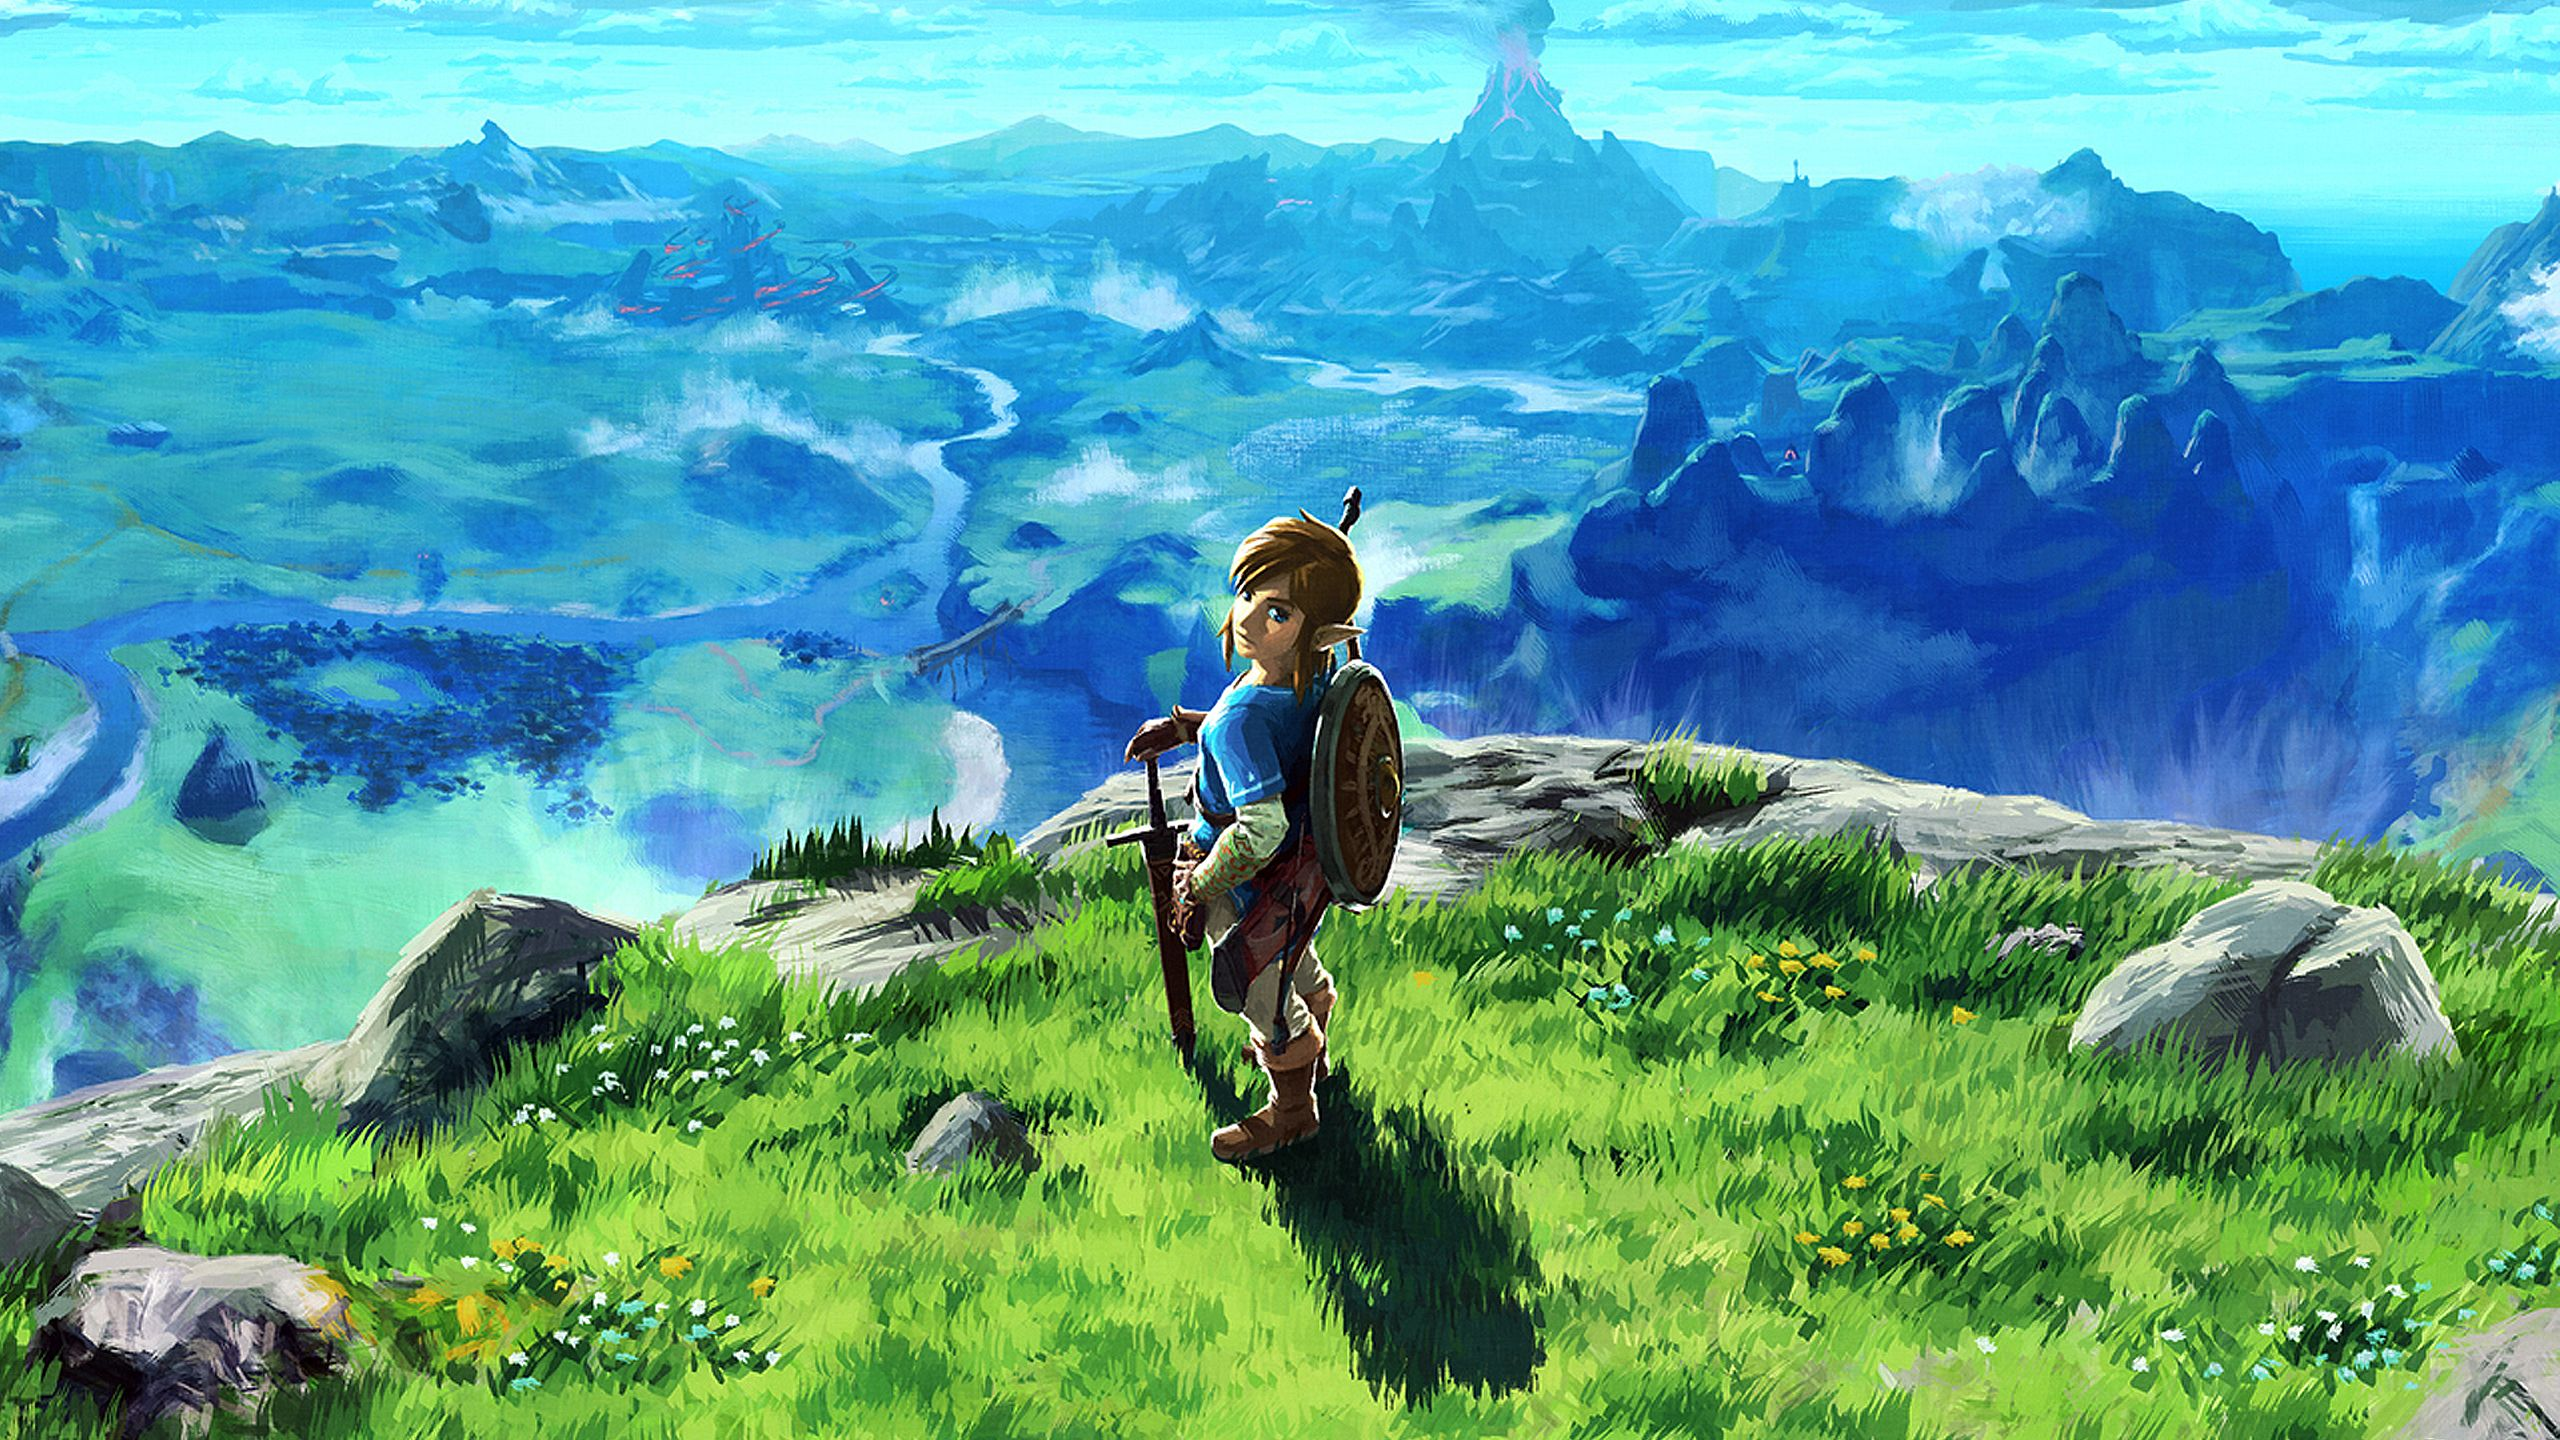 1080p & 1440p Nintendo Wallpapers. Retoned darkened and